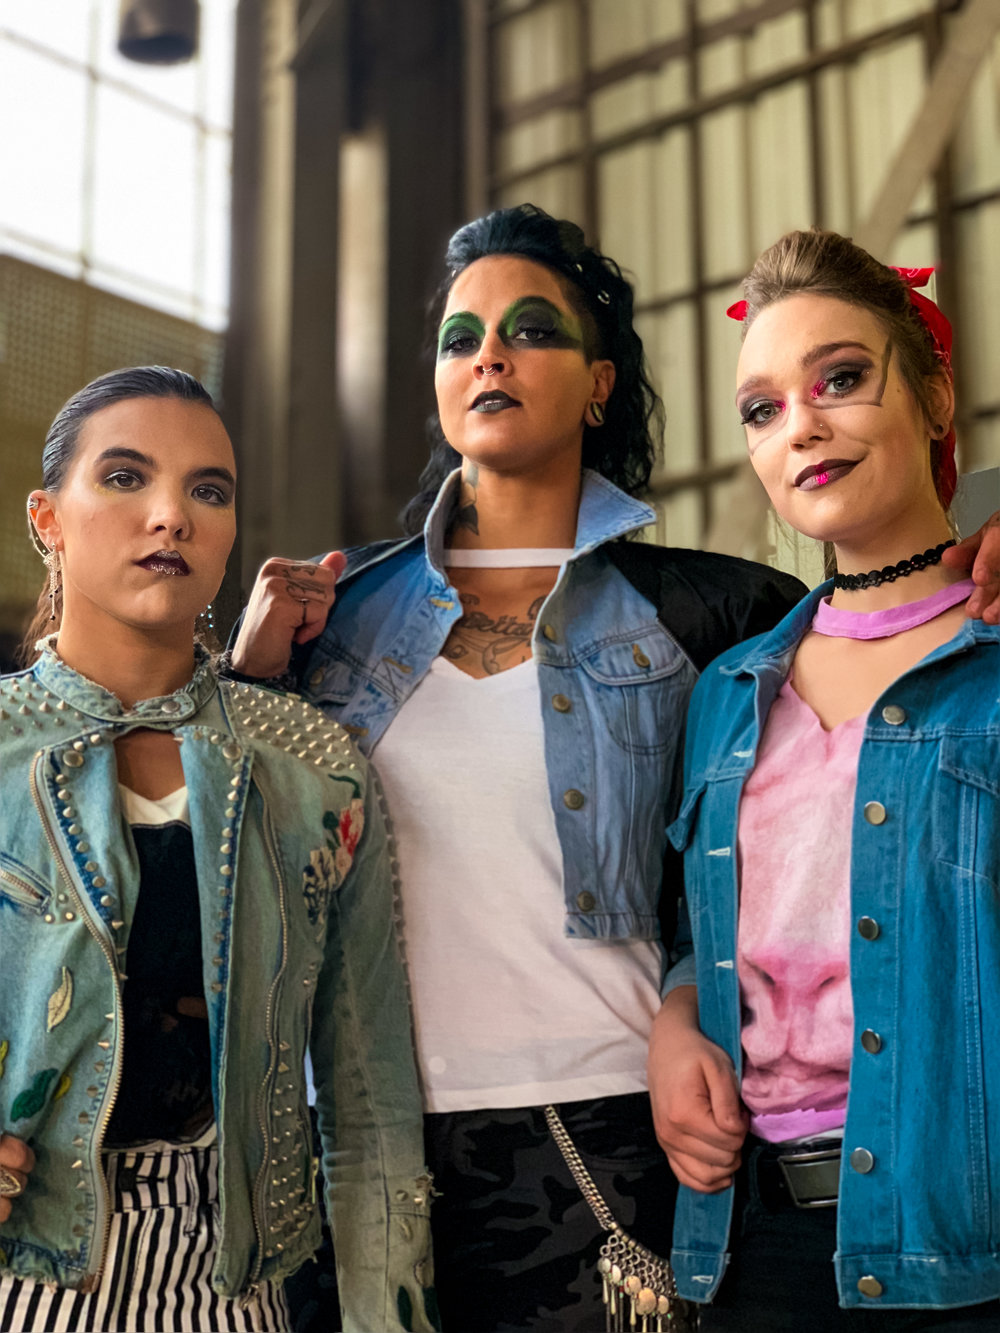 A few of our Rockers and Fashionistas in full hair and makeup. They're ready to fight!